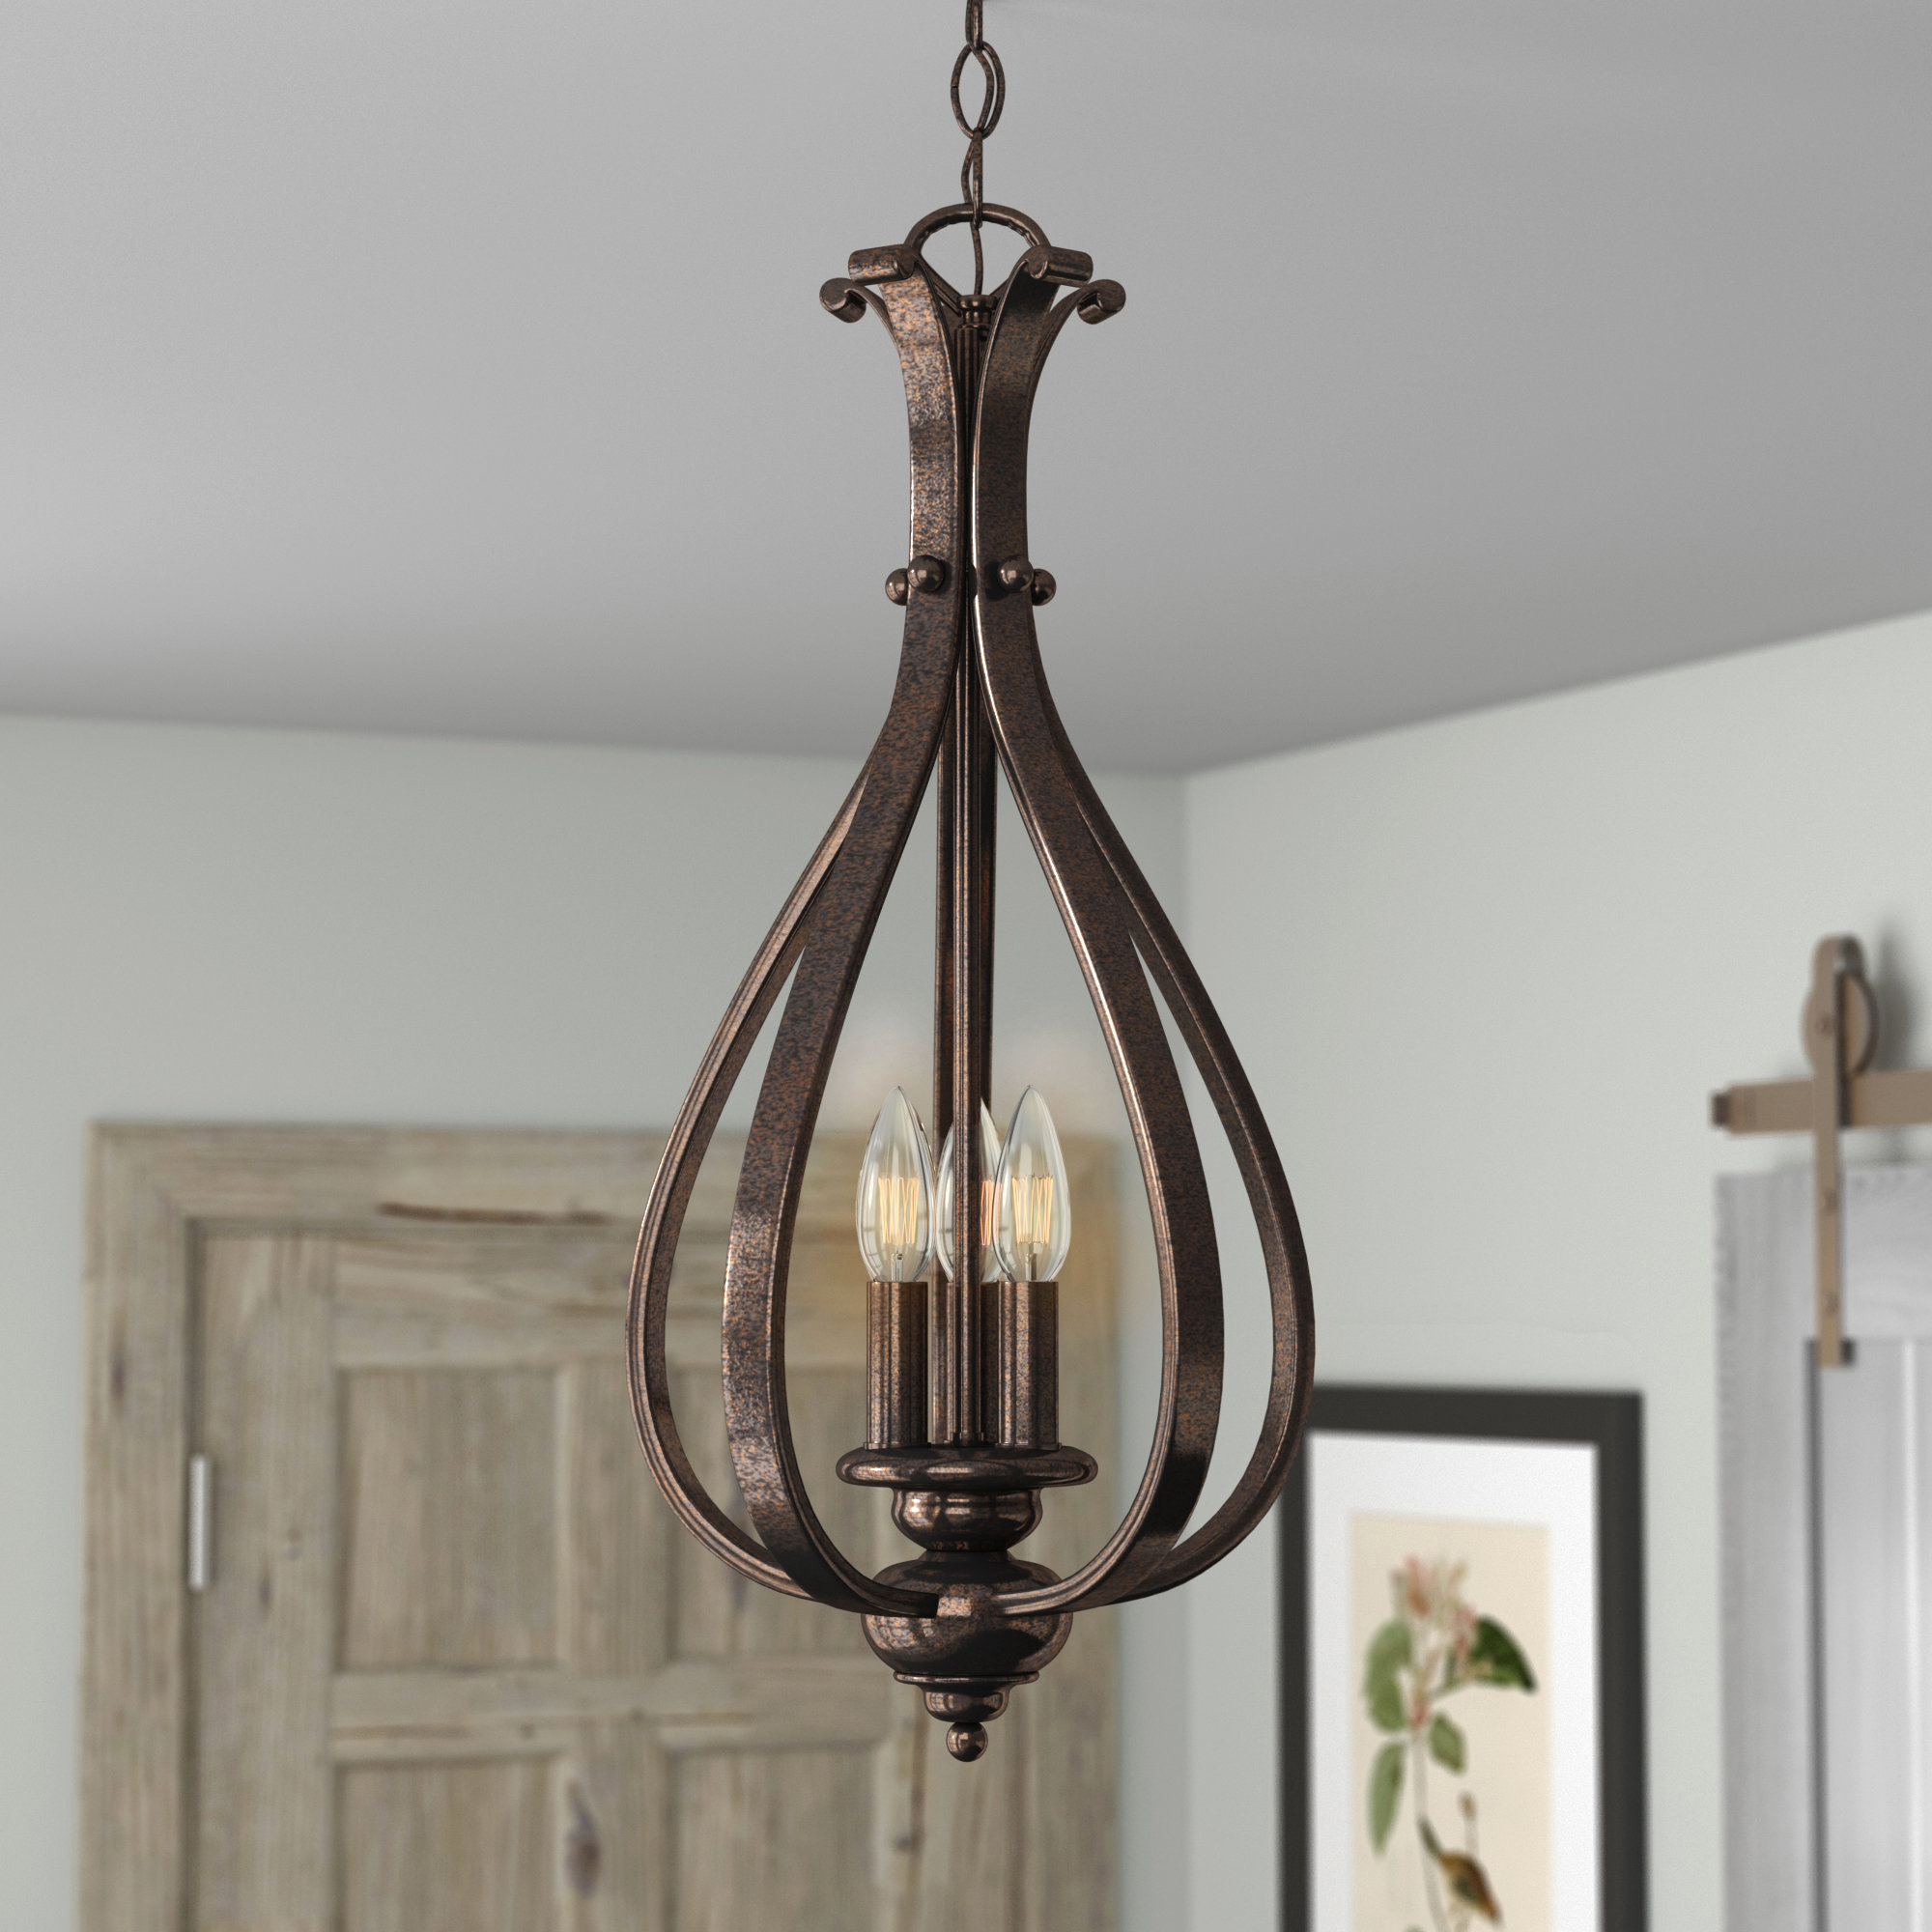 Van Horne 3 Light Foyer Pendant Within Van Horne 3 Light Single Teardrop Pendants (View 6 of 30)